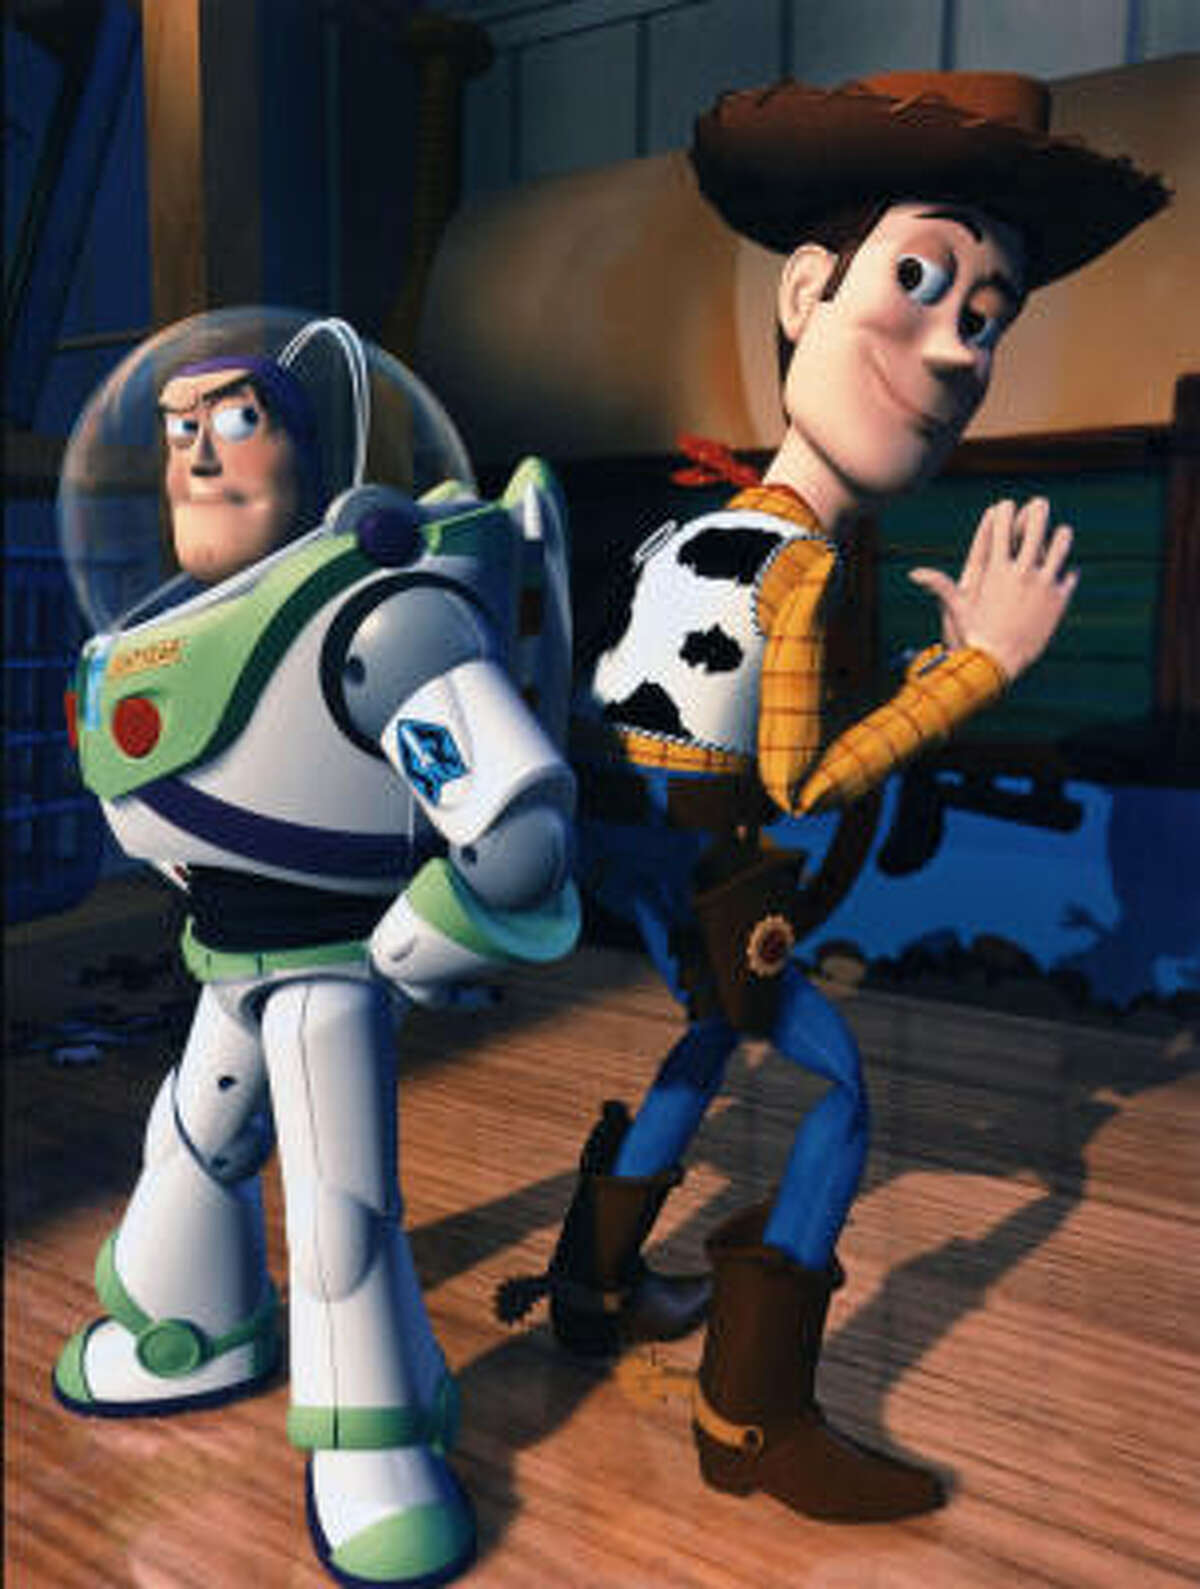 Pixar trivia quiz time! 1. Tom Hanks and Tim Allen provided voices for Toy Story. Who provided the voice for Slinky the Dog?